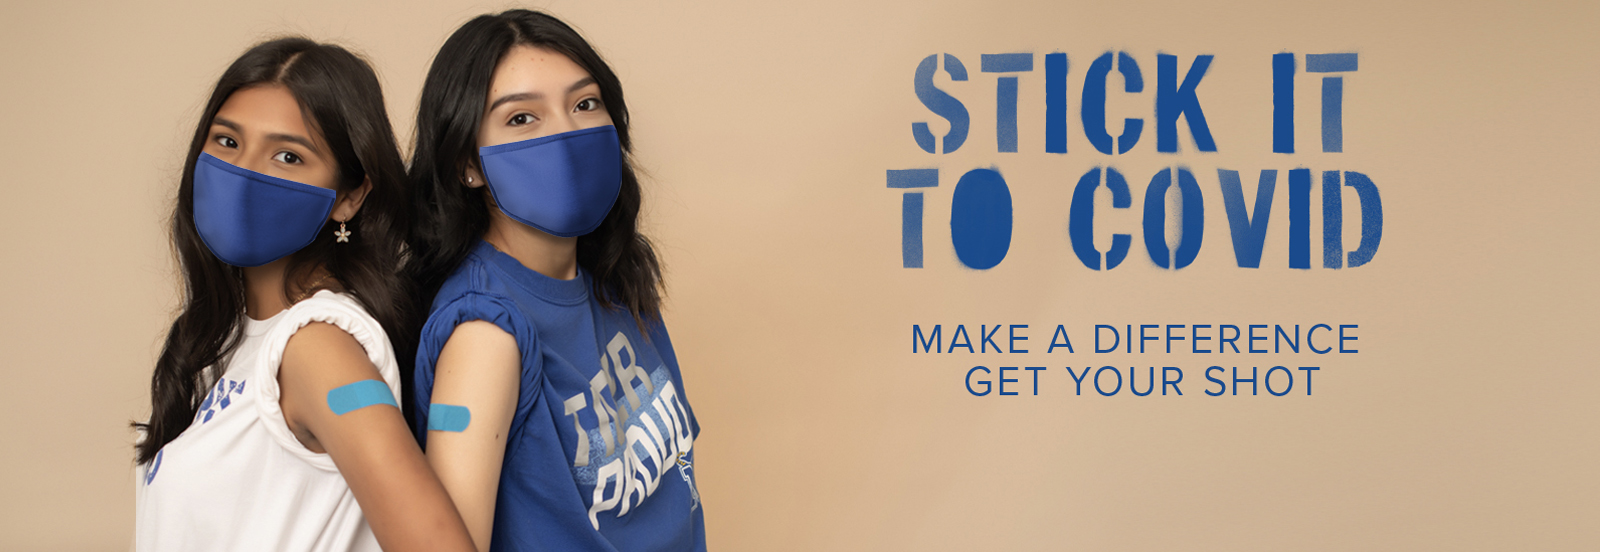 Stick It To COVID | Make a Difference, Get Your Shot